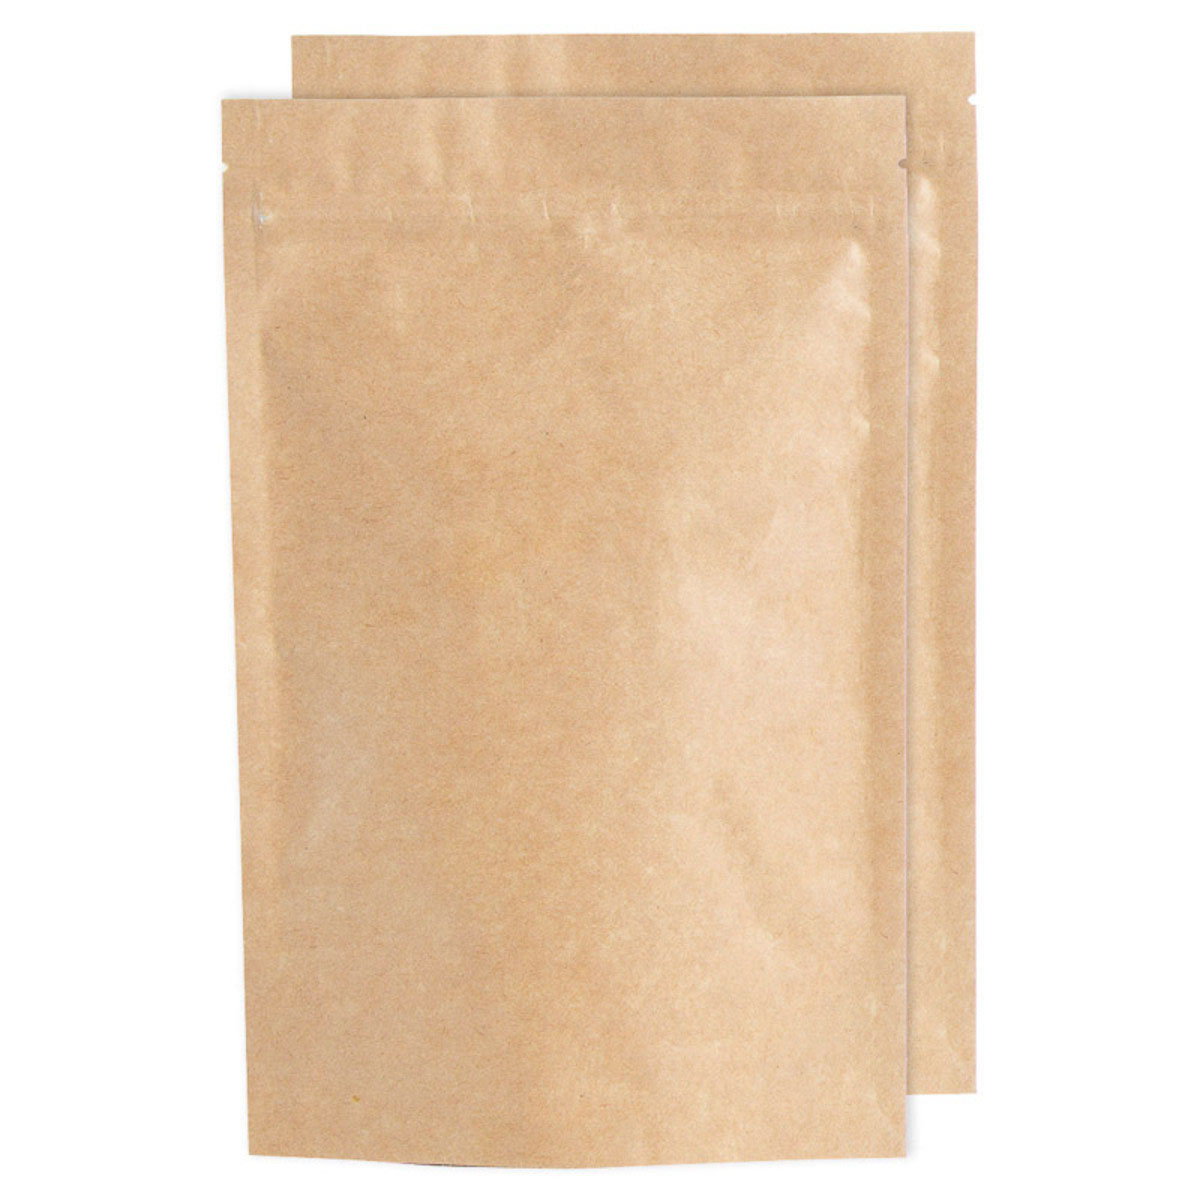 Ounce Kraft Opaque Barrier Bags (100 Qty.)